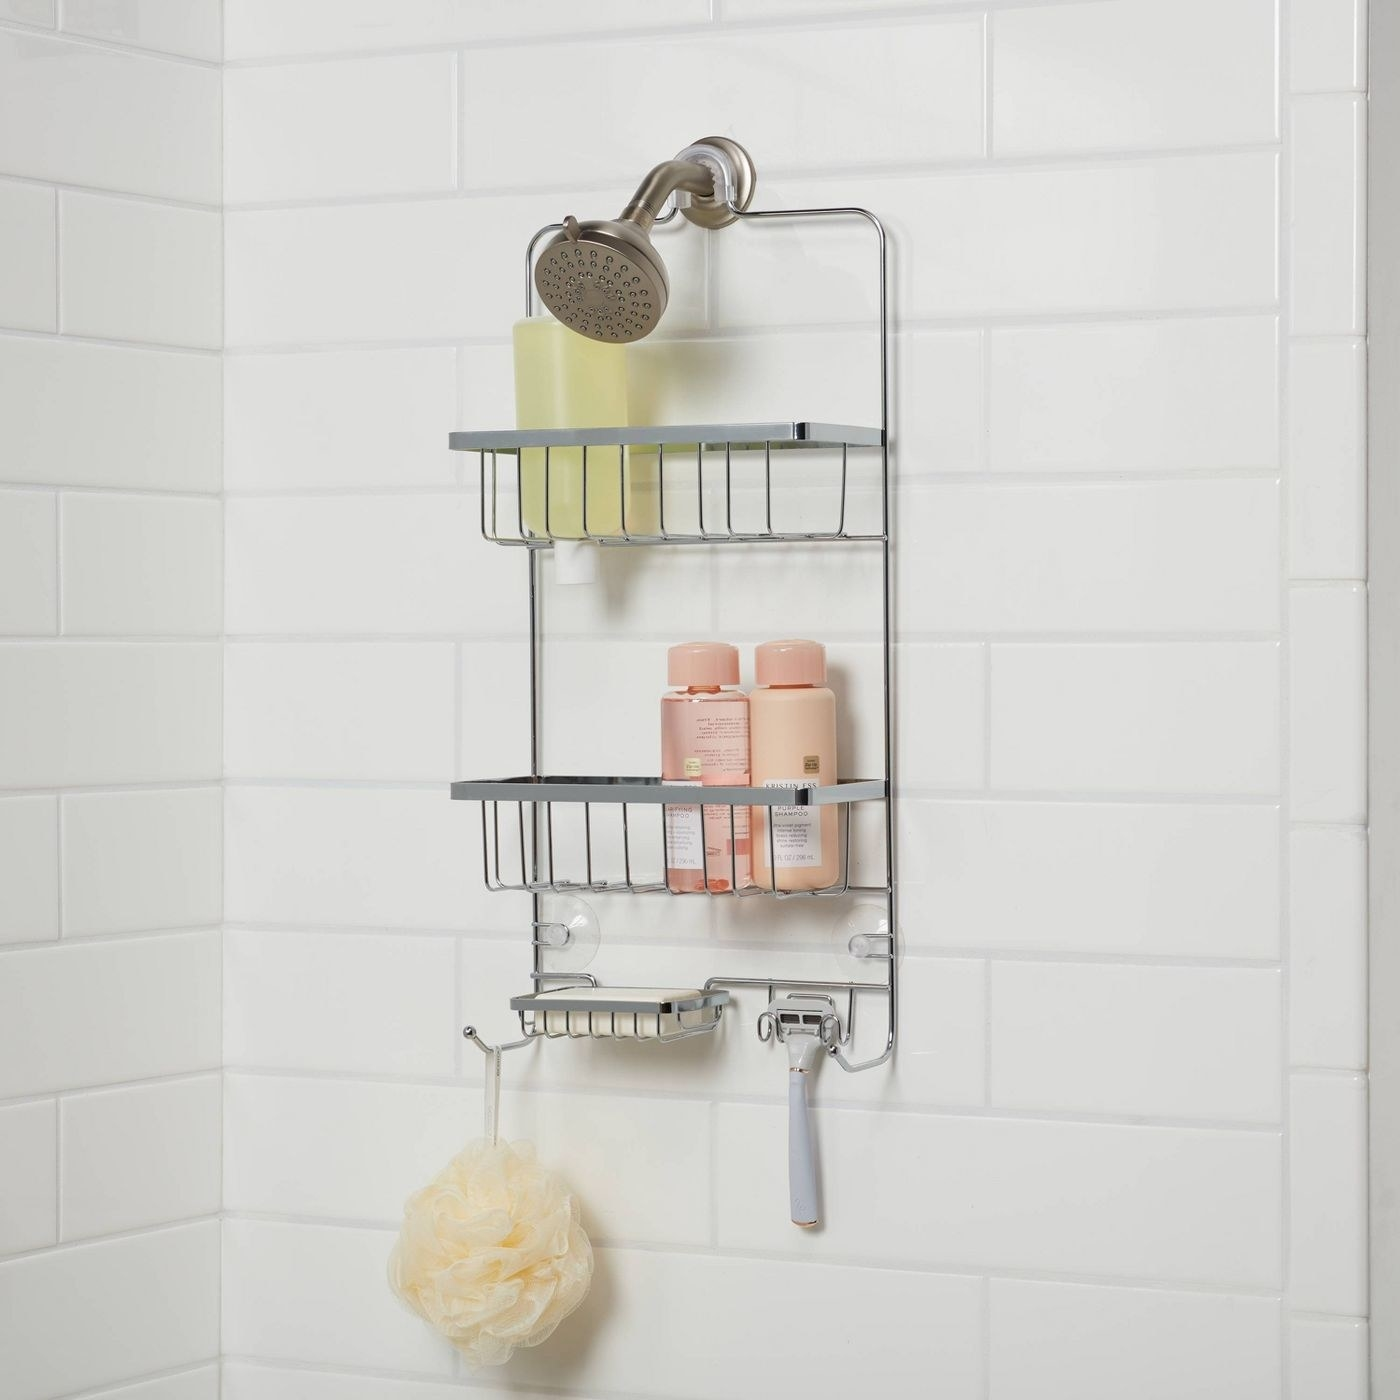 Chrome shower caddy with pink bottles and a pale yellow loofah